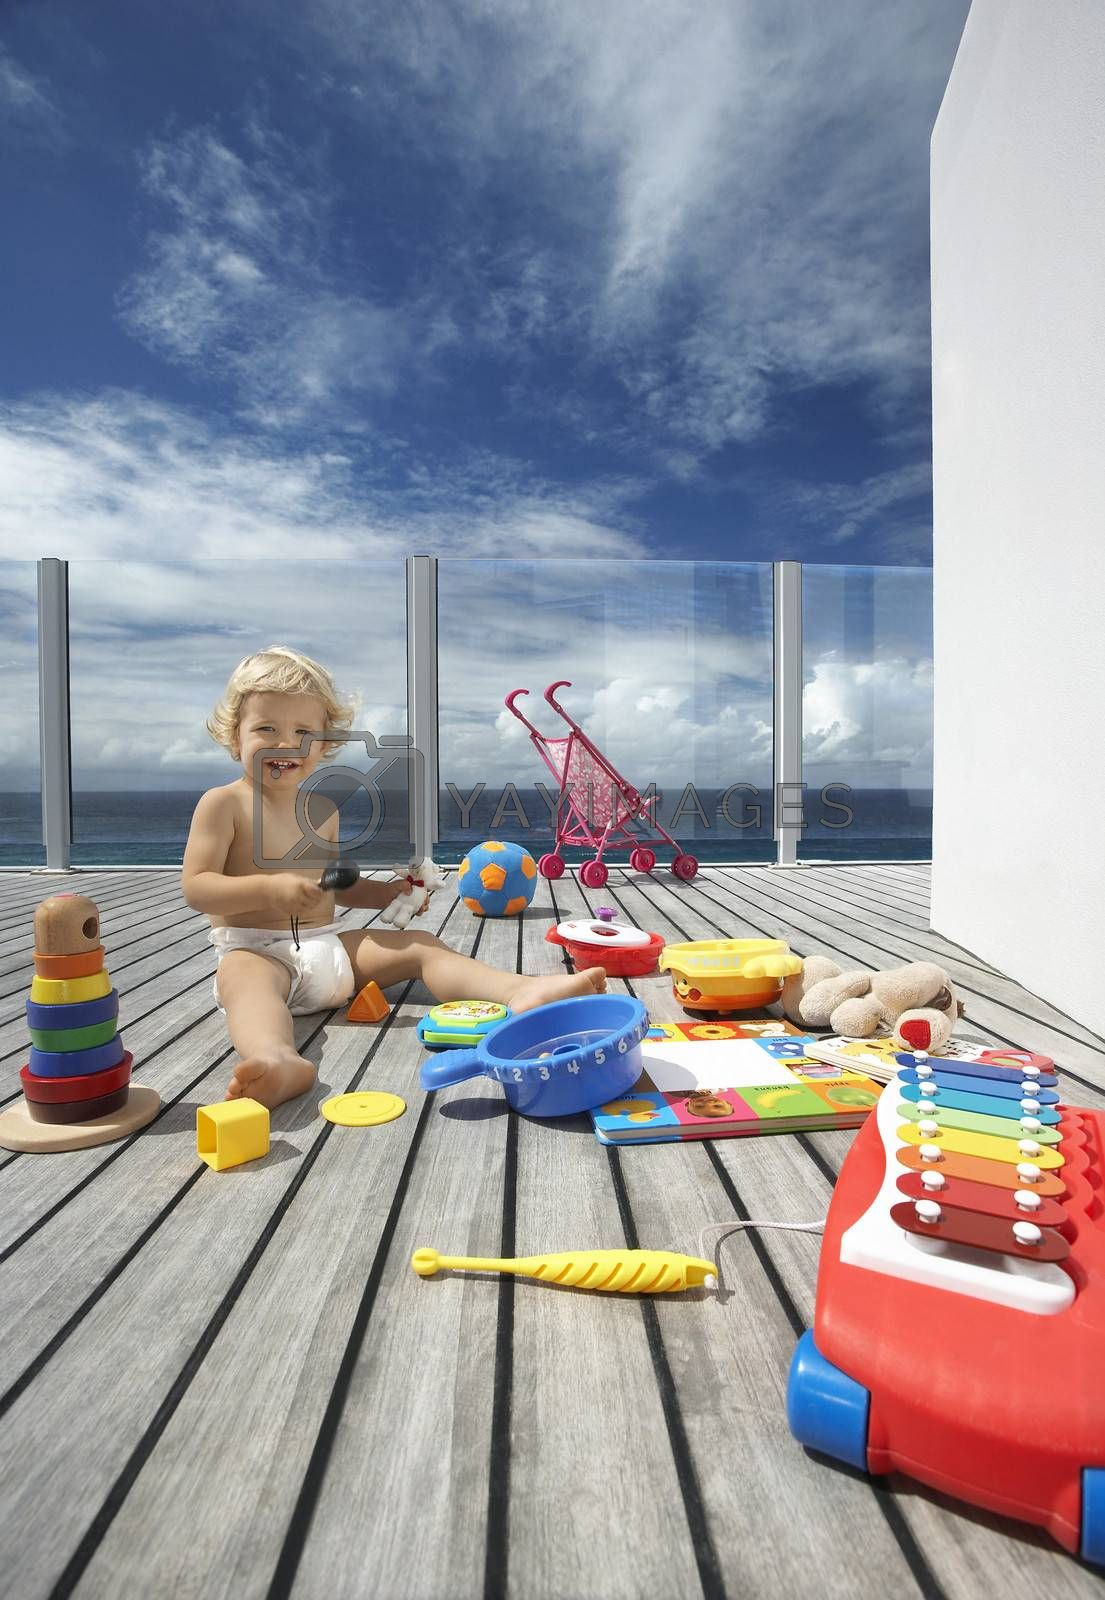 Royalty free image of Baby Boy Playing on Porch with lots of toys by moodboard